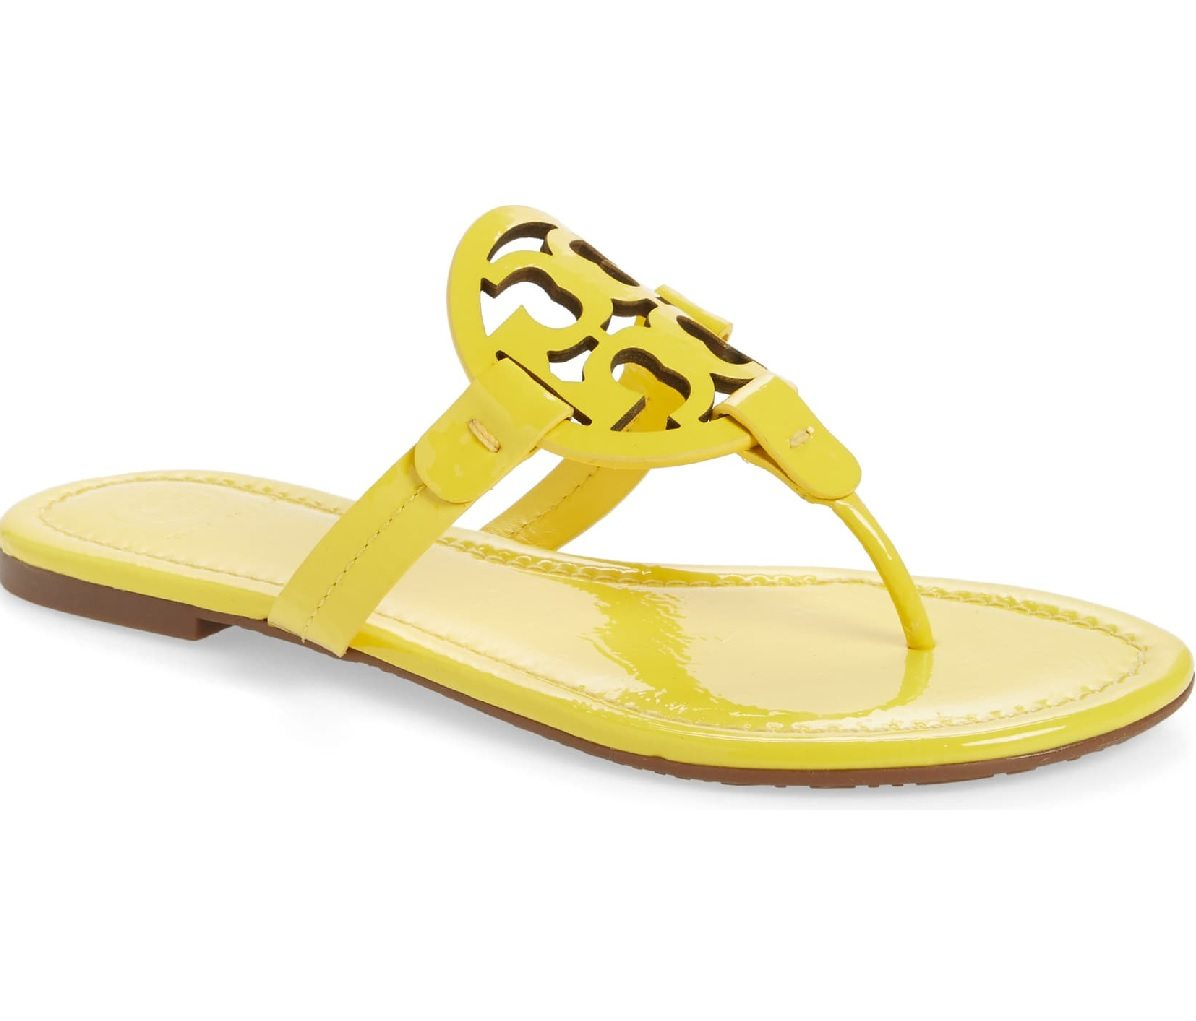 Women Footwear For Comfort and Style